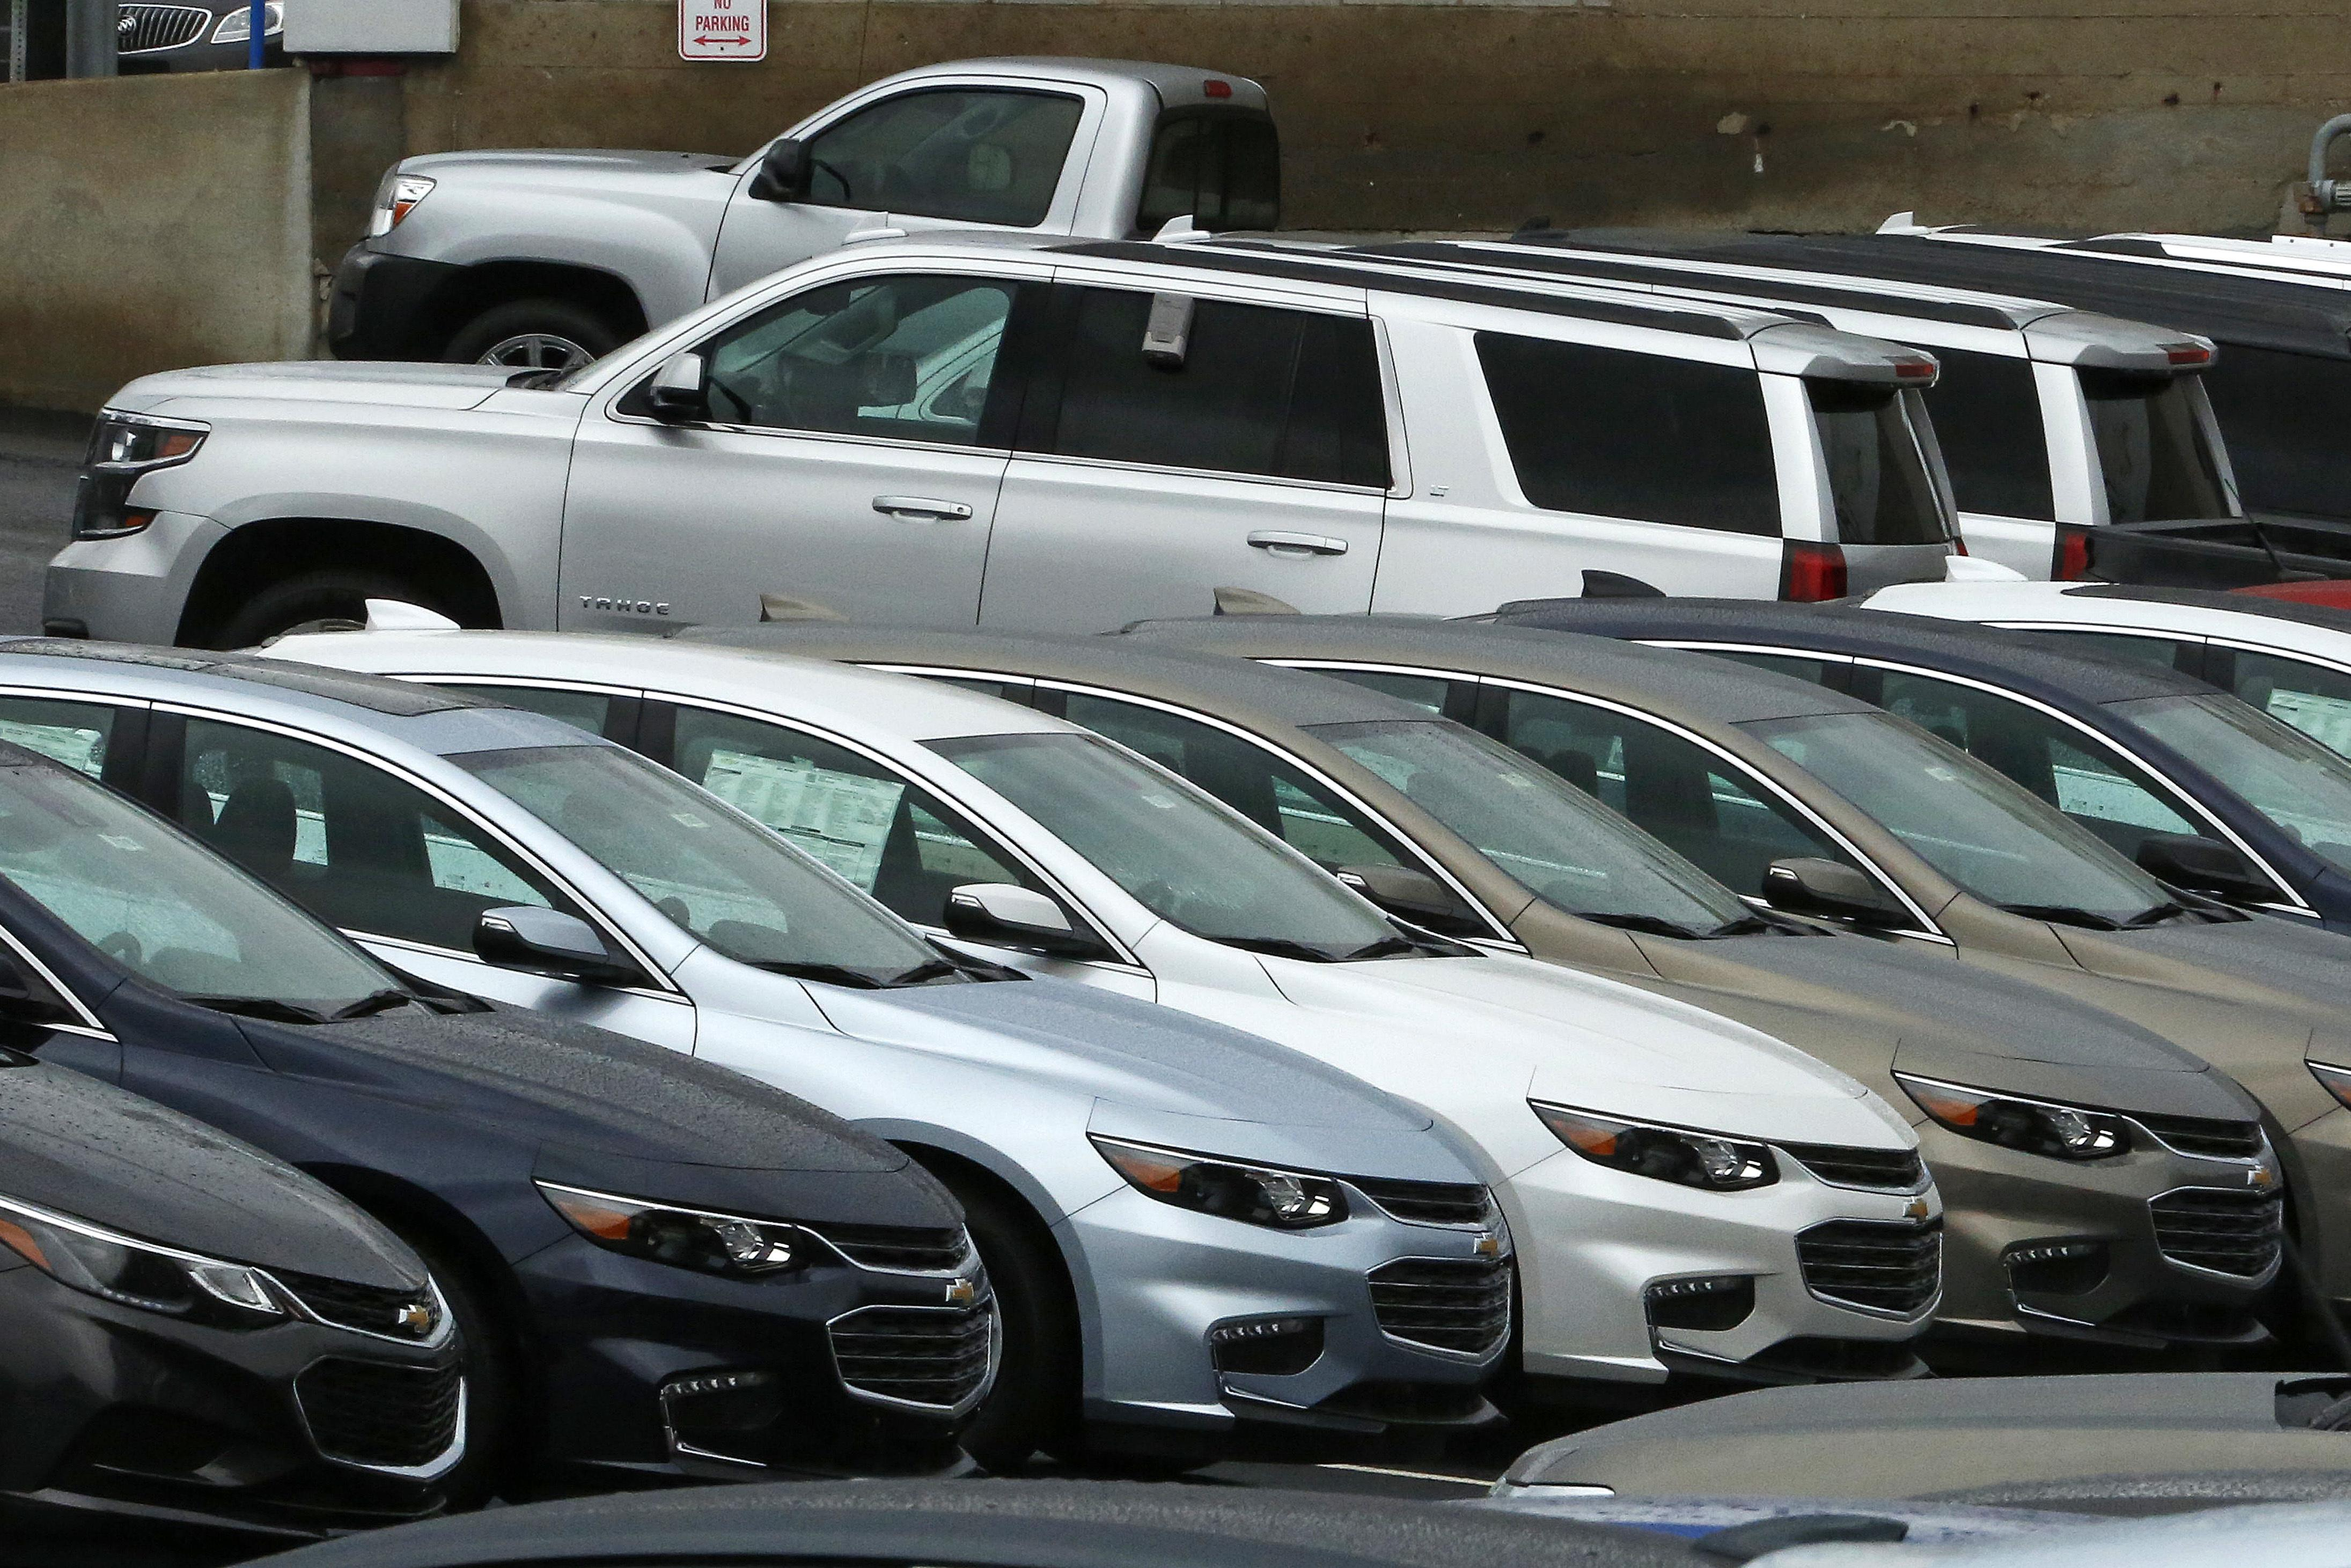 Demand For Trucks, SUVs Helps February Sales